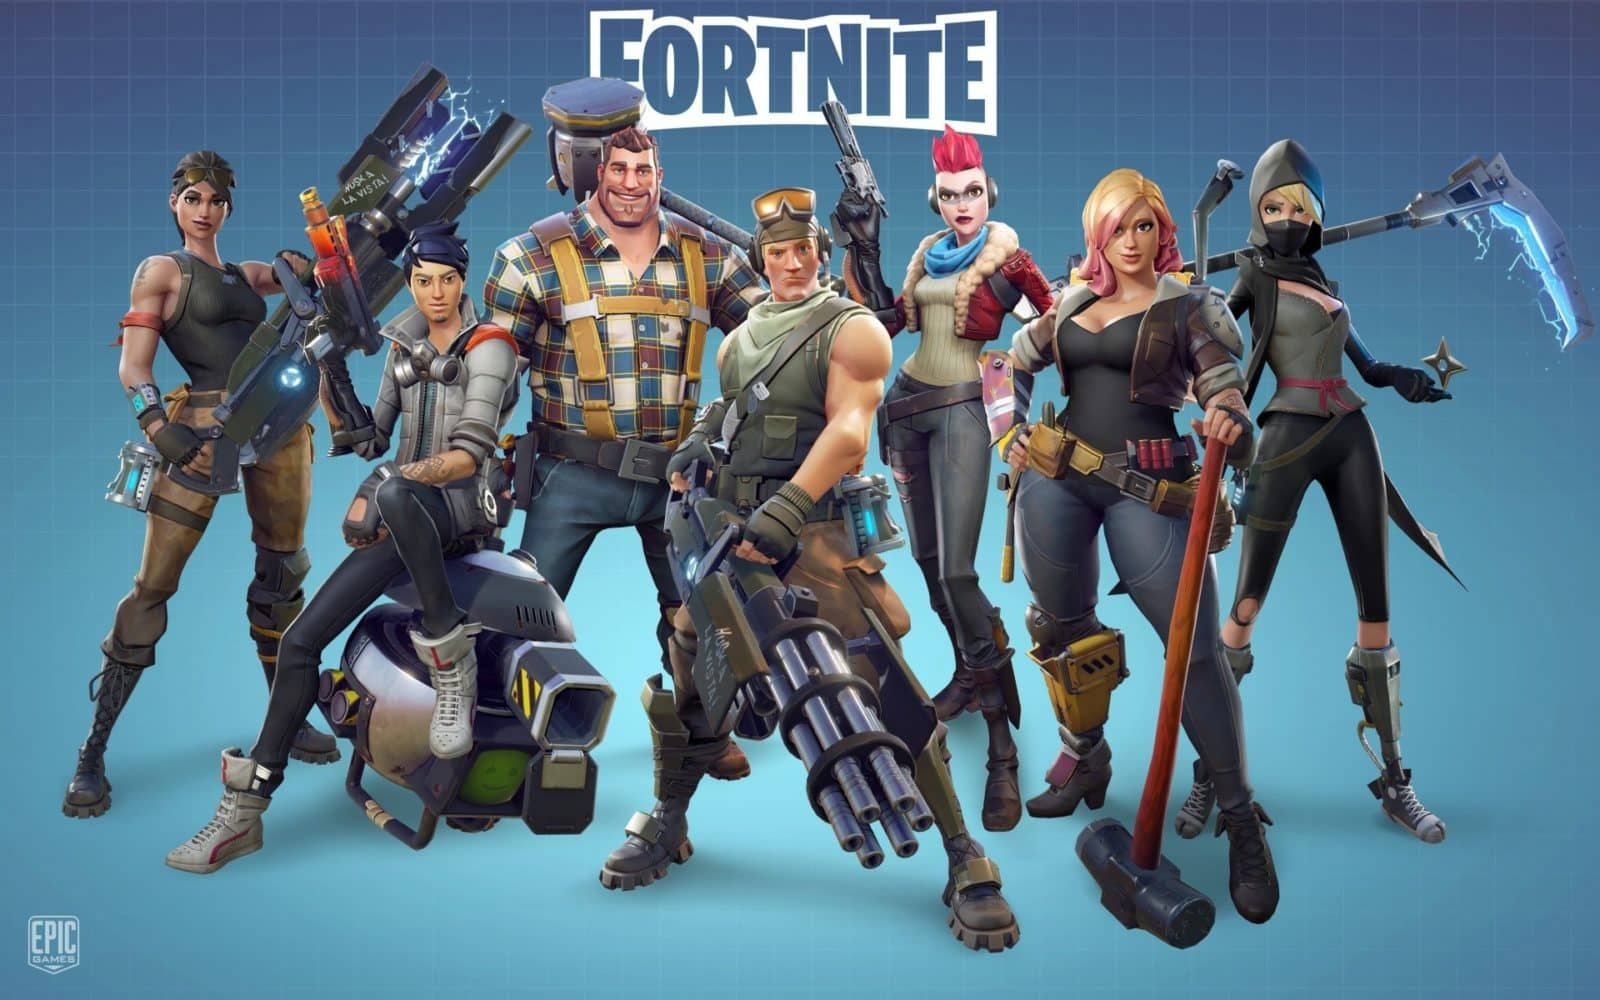 An image showing the characters of fortnite with heavy equipment guns